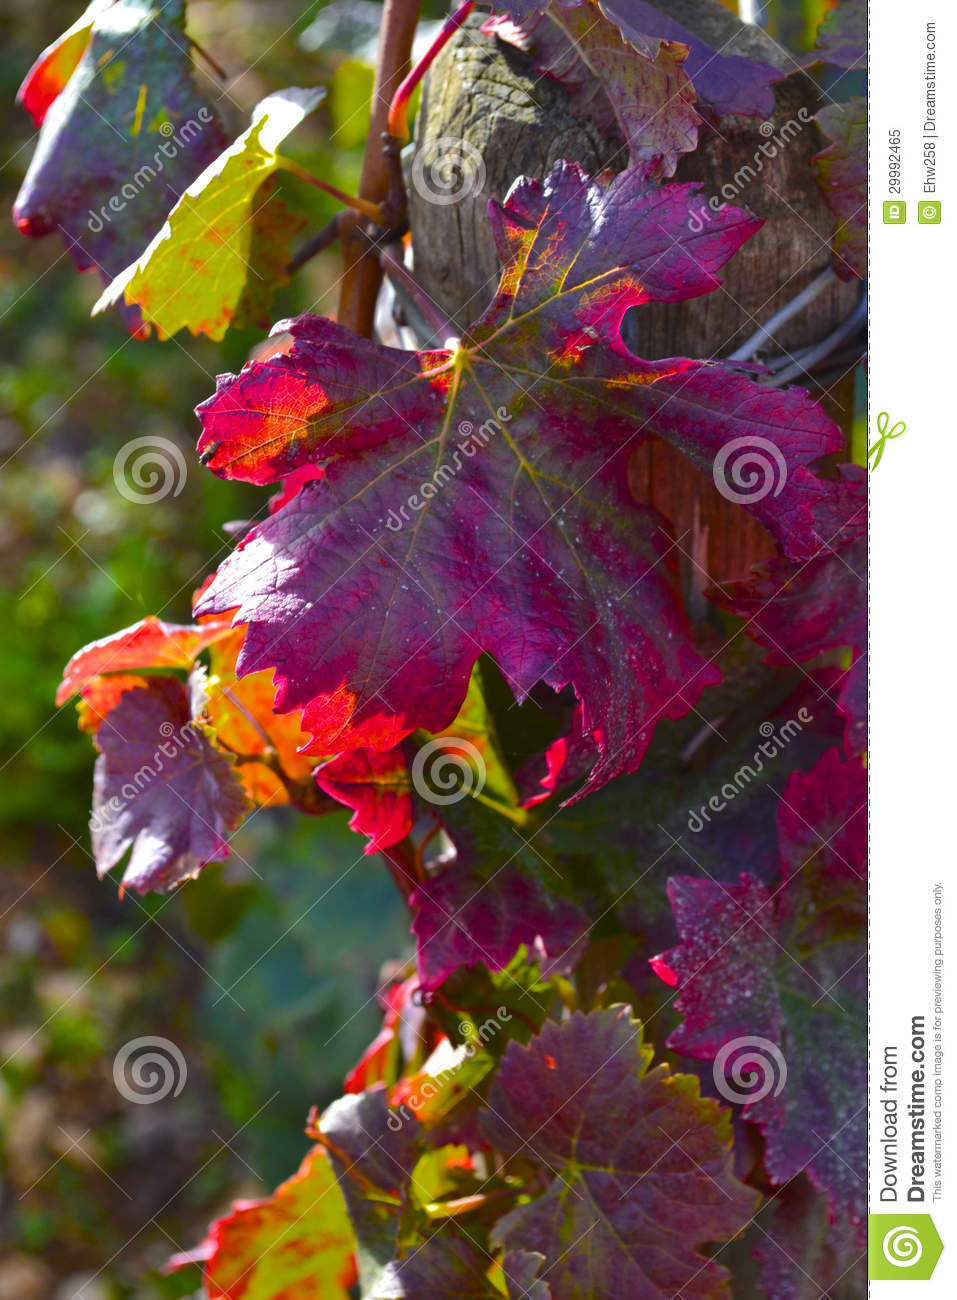 Fall grape leaves royalty free stock photo image 29992465 - The splendid transformation of a vineyard in burgundy ...